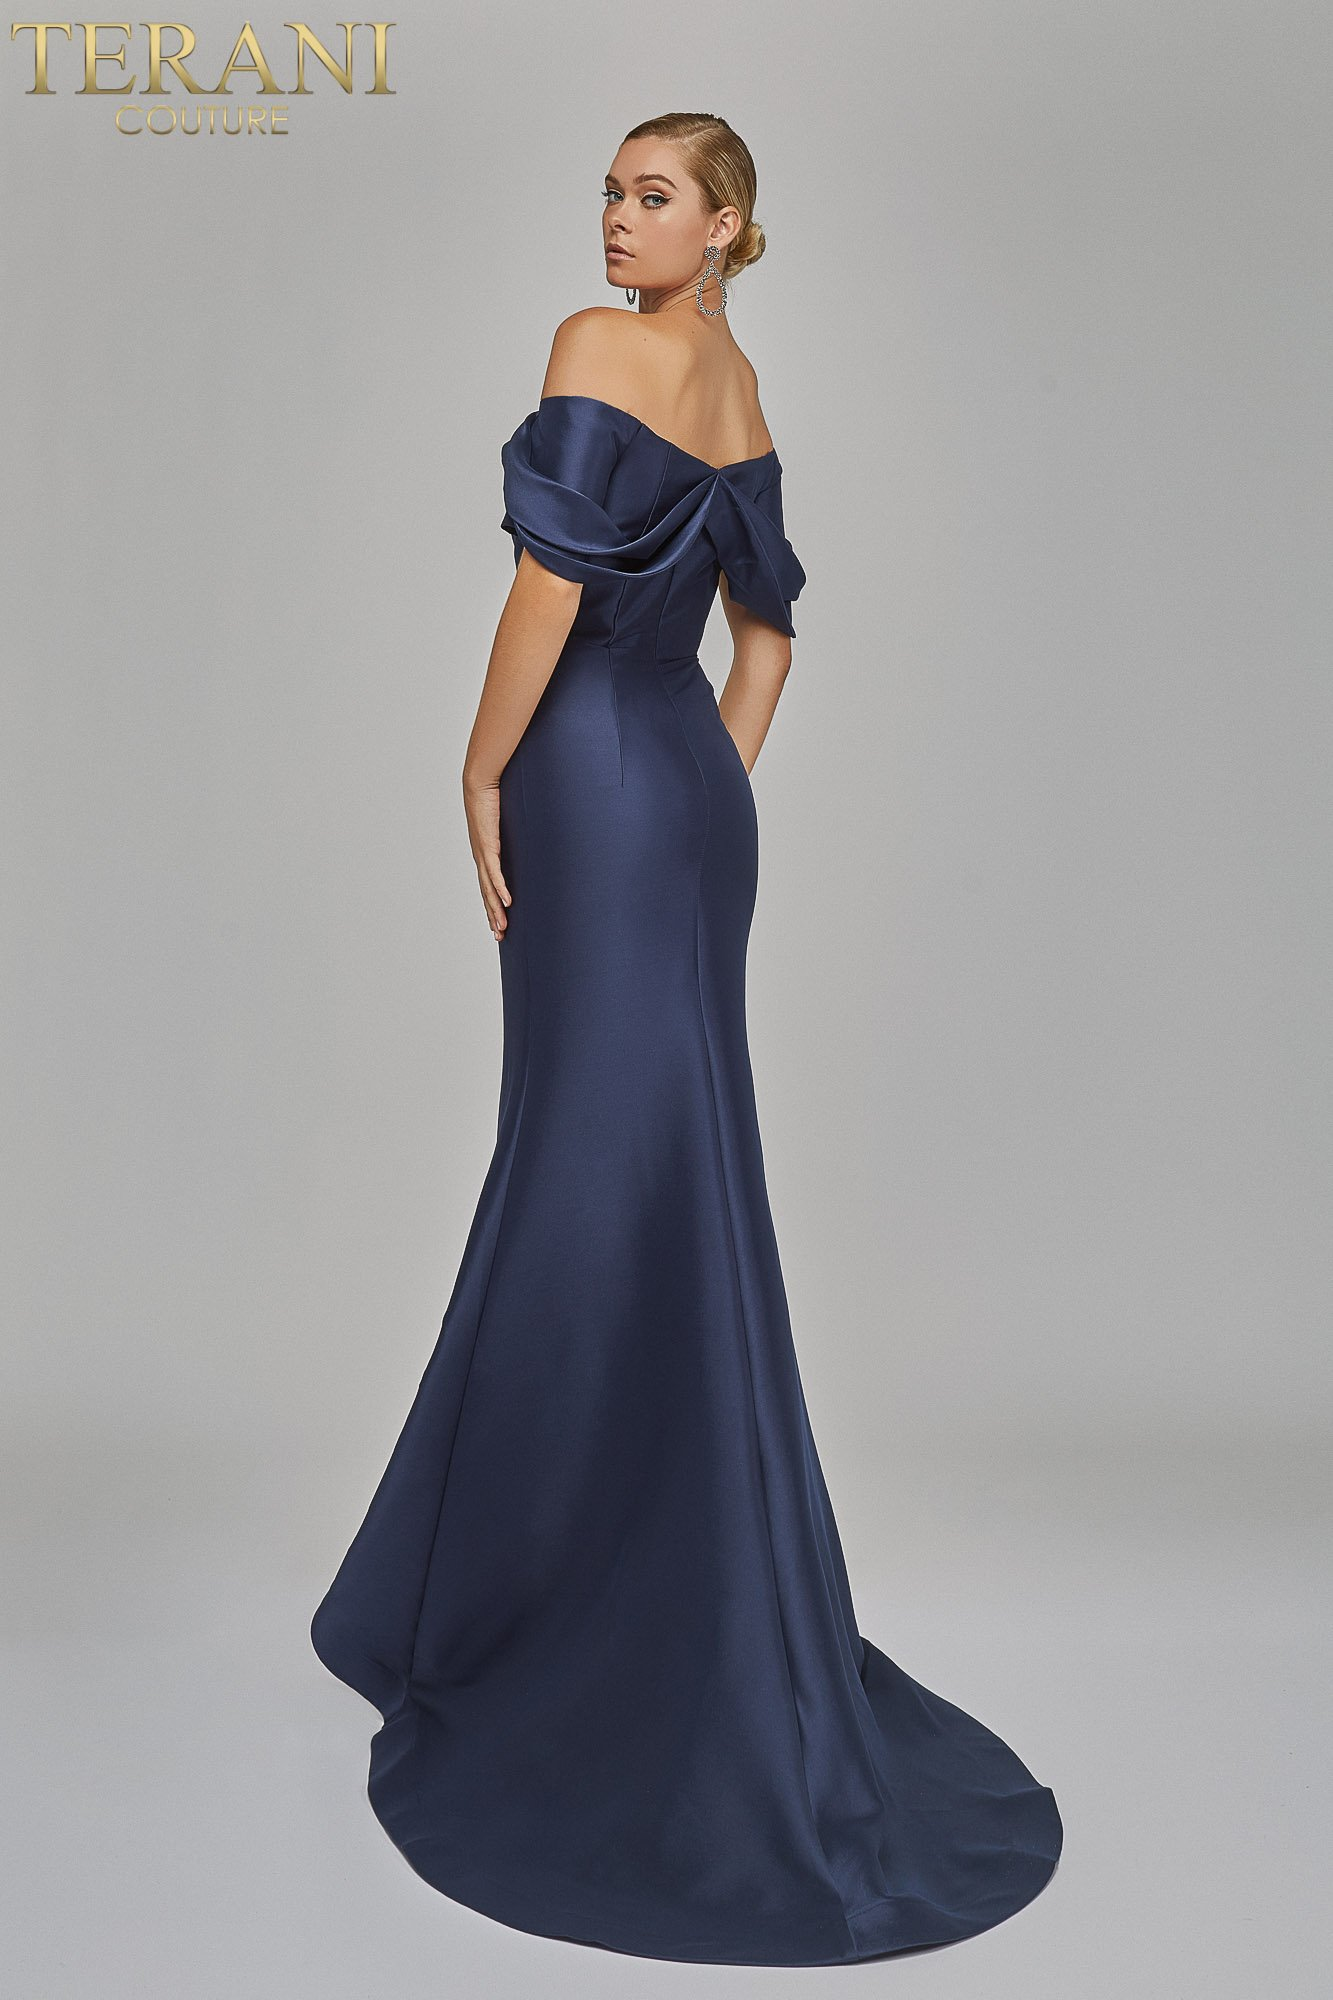 Eye catching off shoulder Evening stretch Mikado Gown - 1921E0113